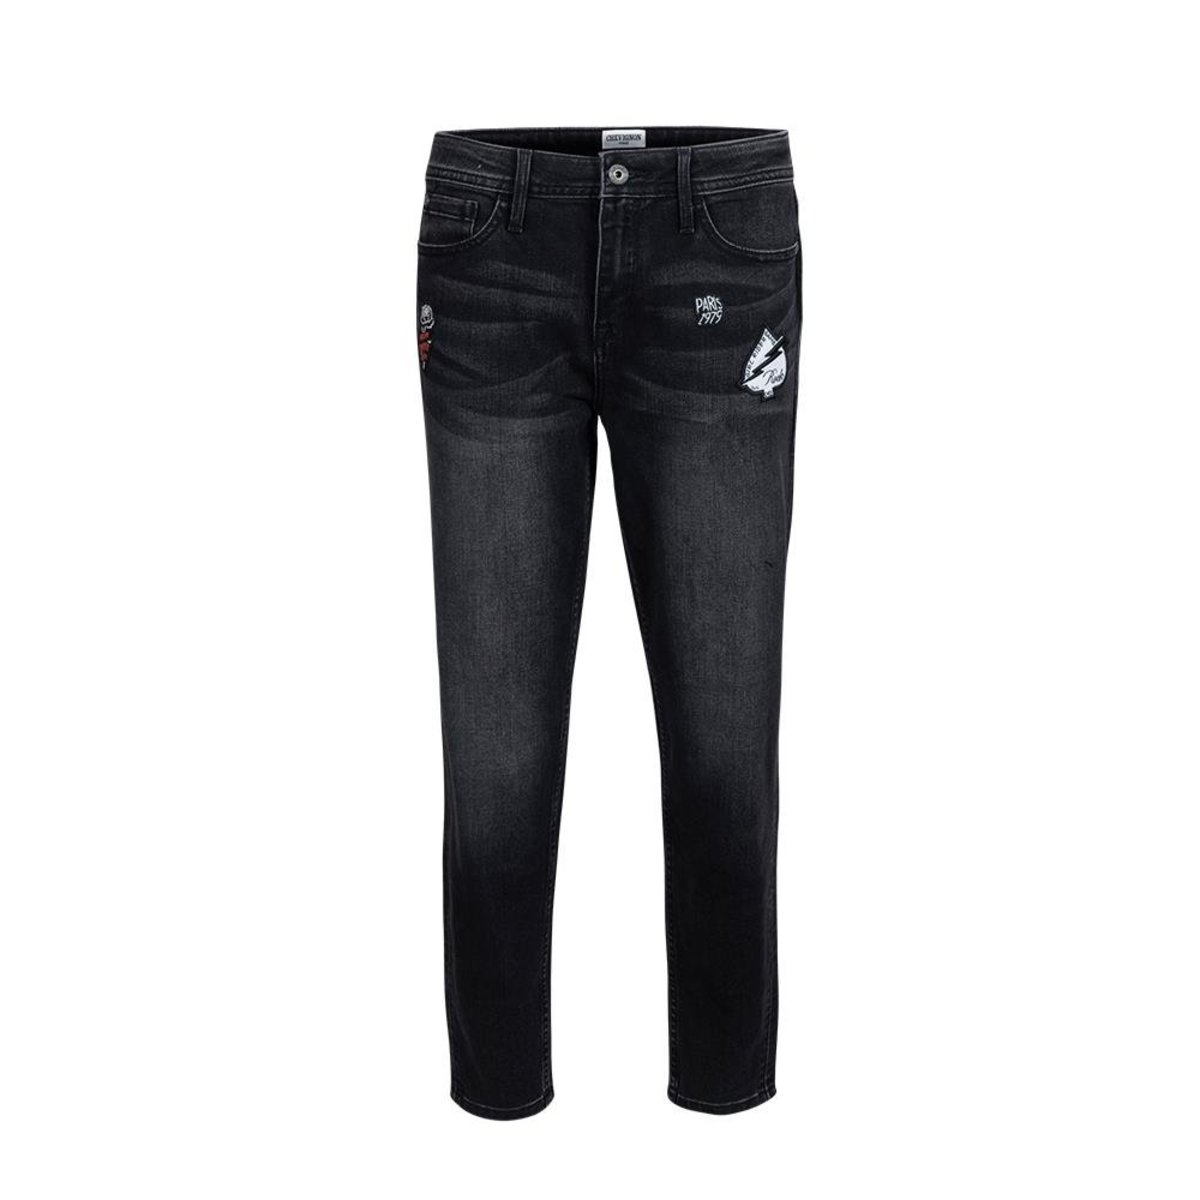 Ladies' Coolmax Comfort Taper Ankle-length Washed Jeans